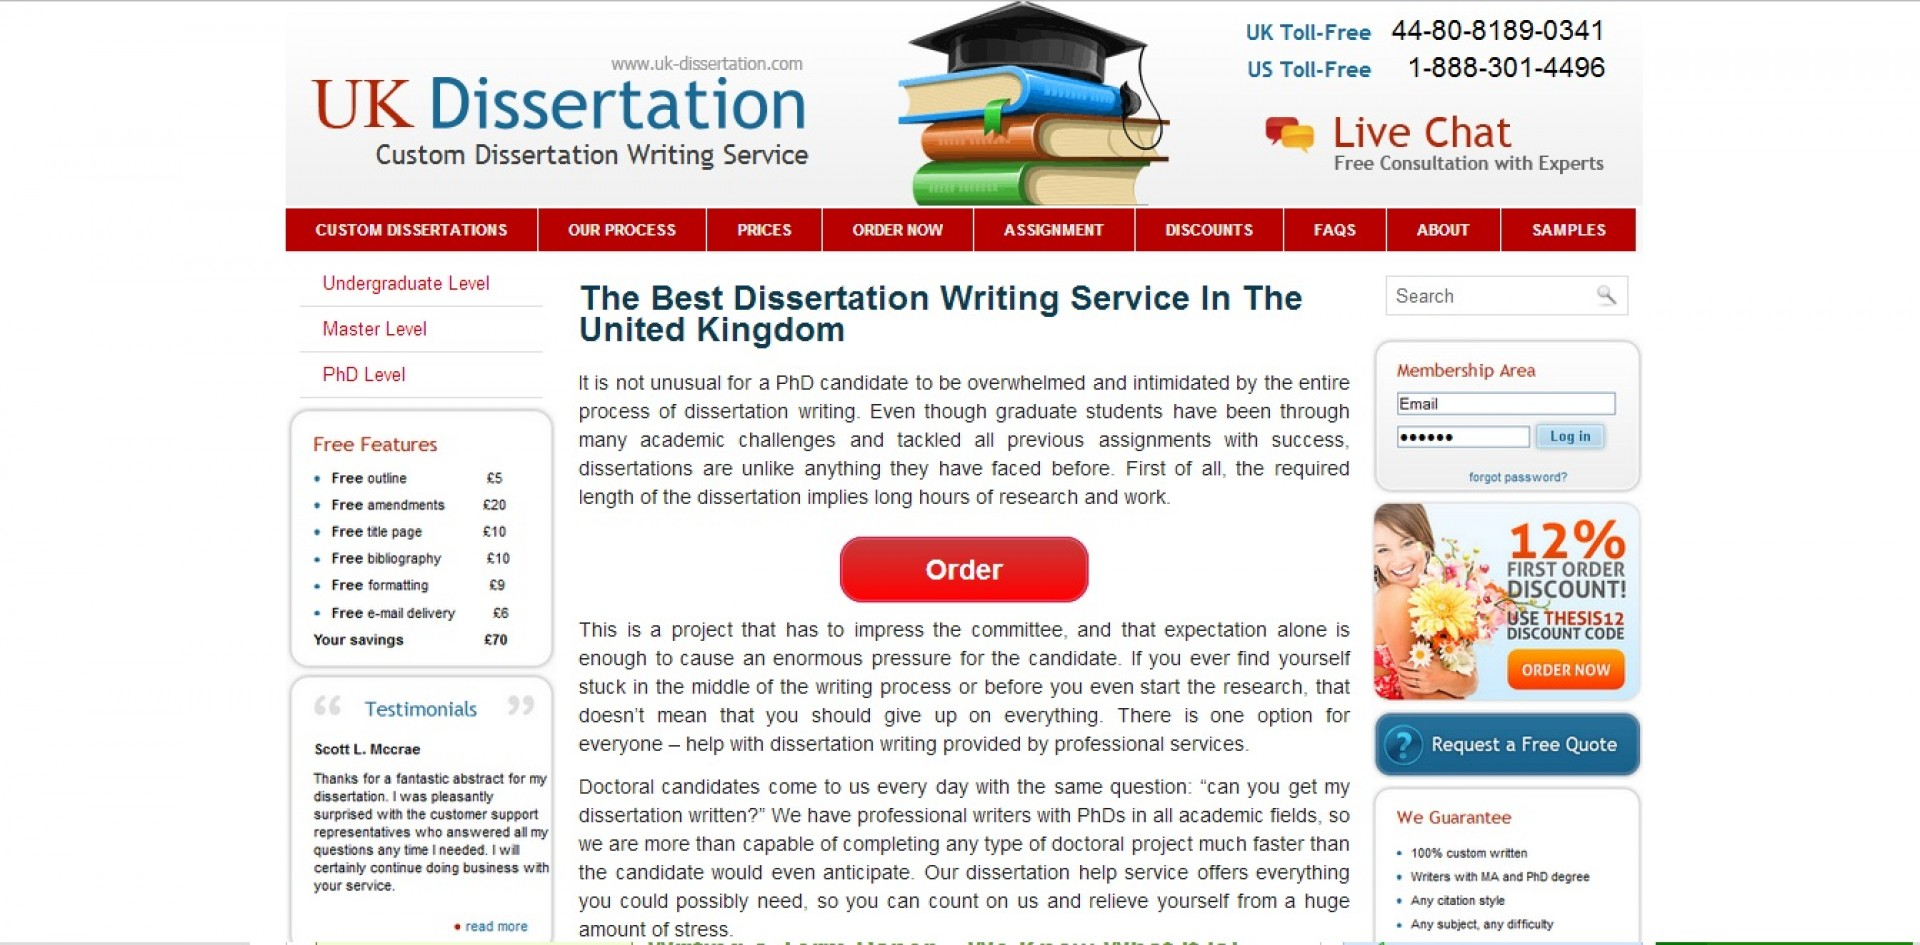 008 Custom Essays Essay Example 3048095565 Urgent Awesome Buy Online No Plagiarism 1920